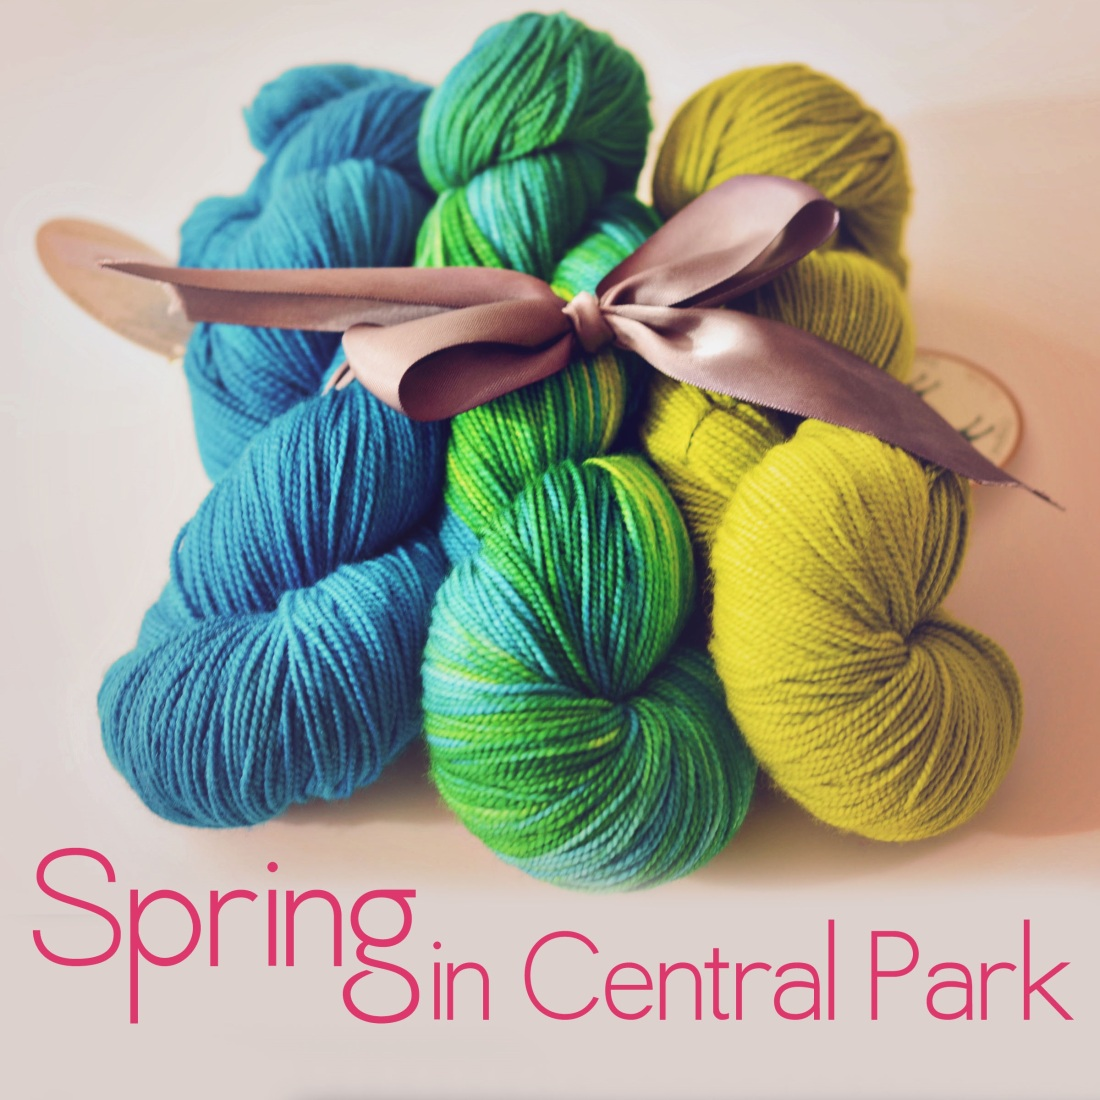 Spring in Central Park yummy shawl kit!